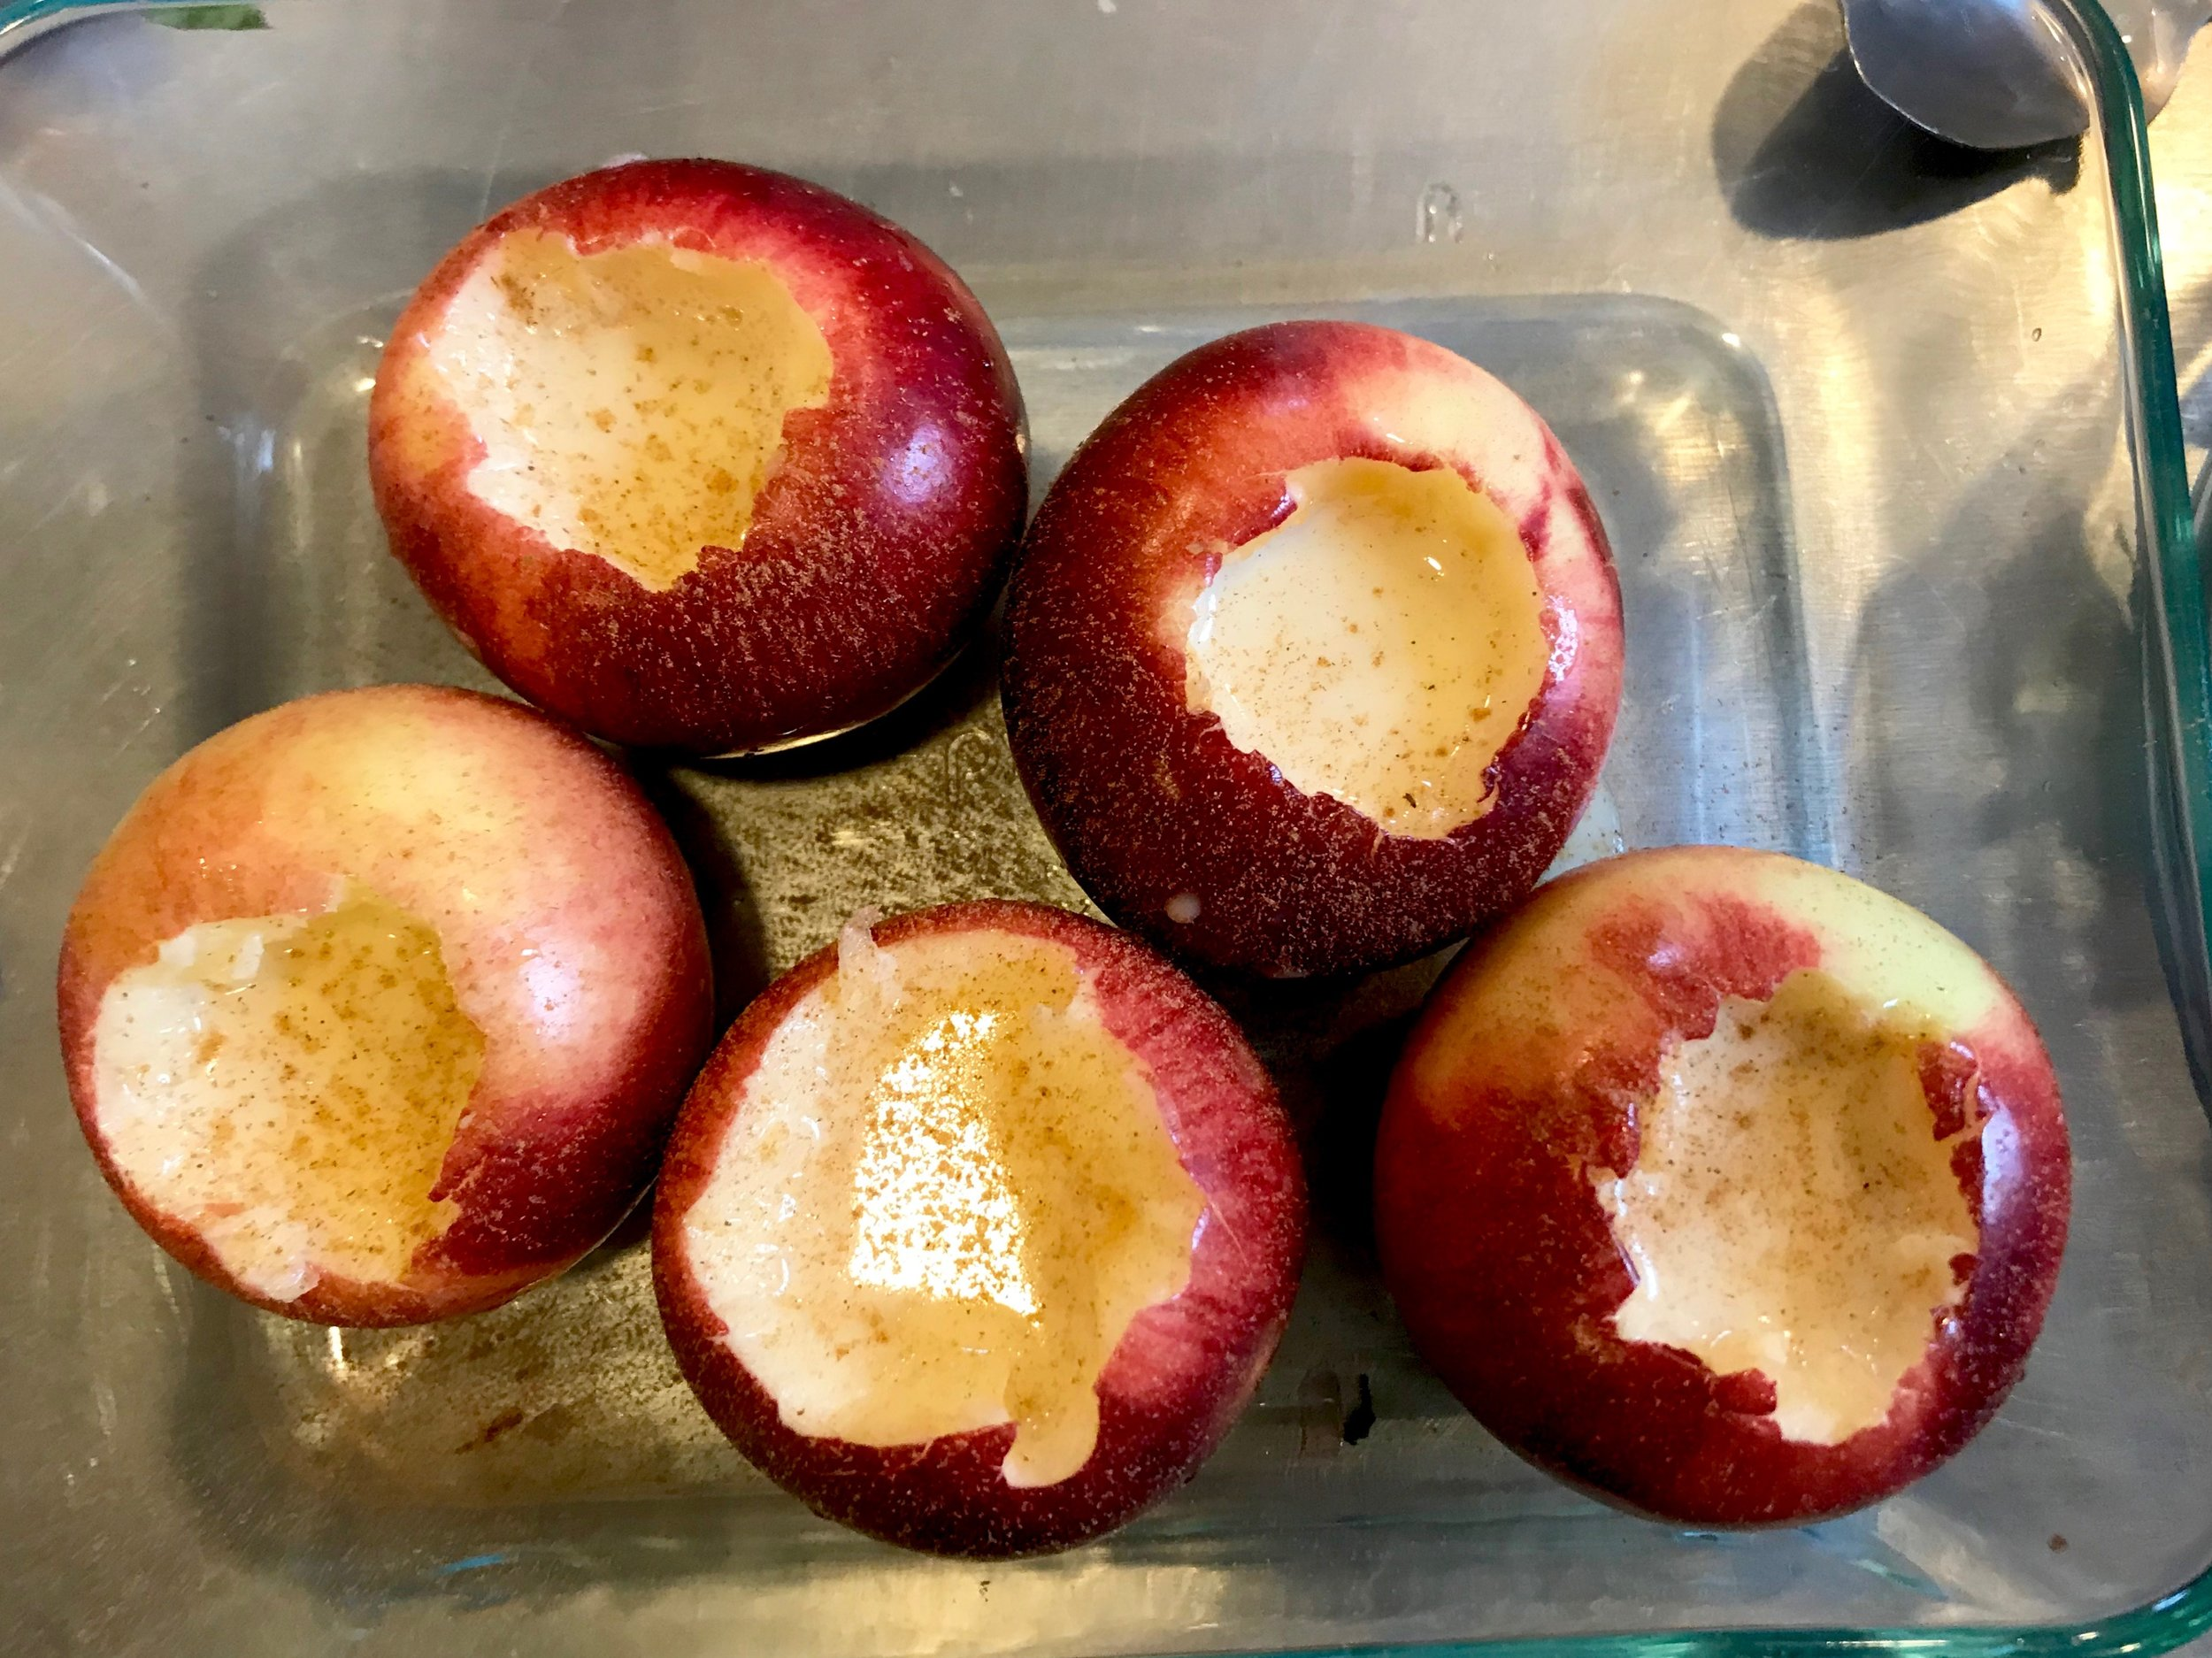 apples in baking pan with cinnamon and custard